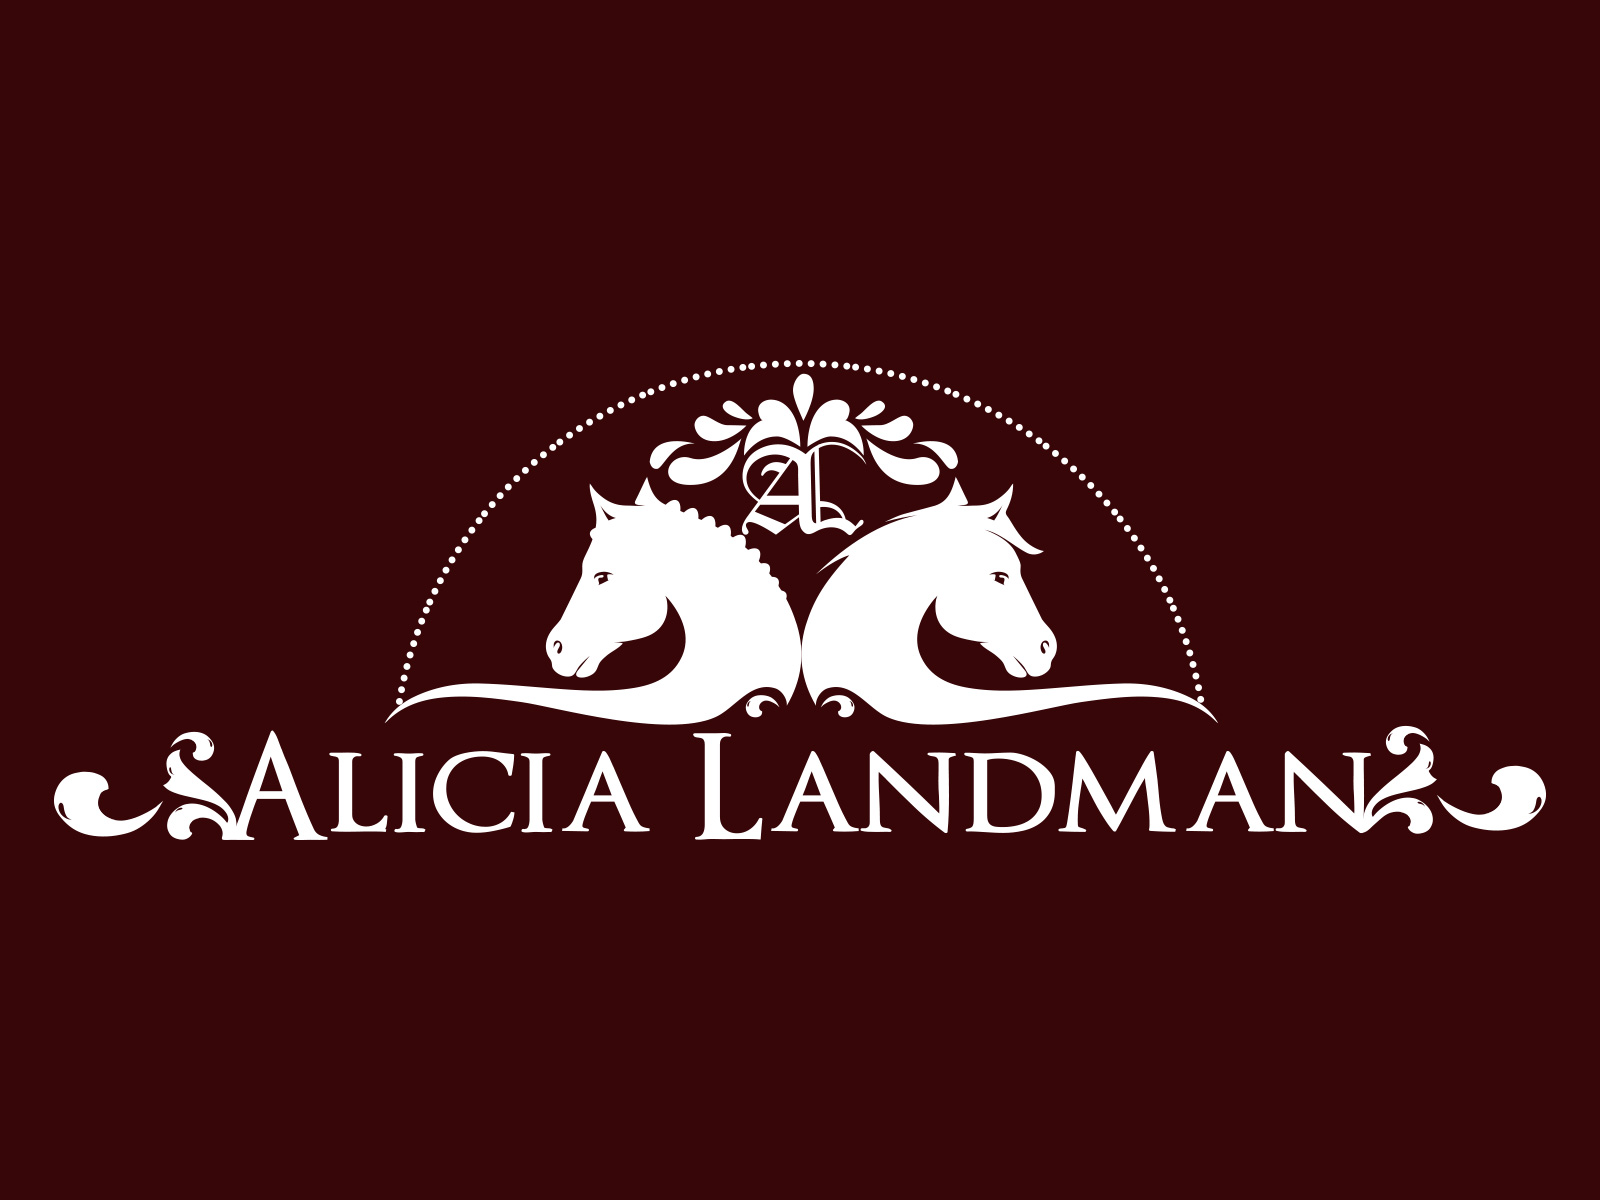 Logo Design by olii - Entry No. 96 in the Logo Design Contest Fun Logo Design for Alicia Landman.